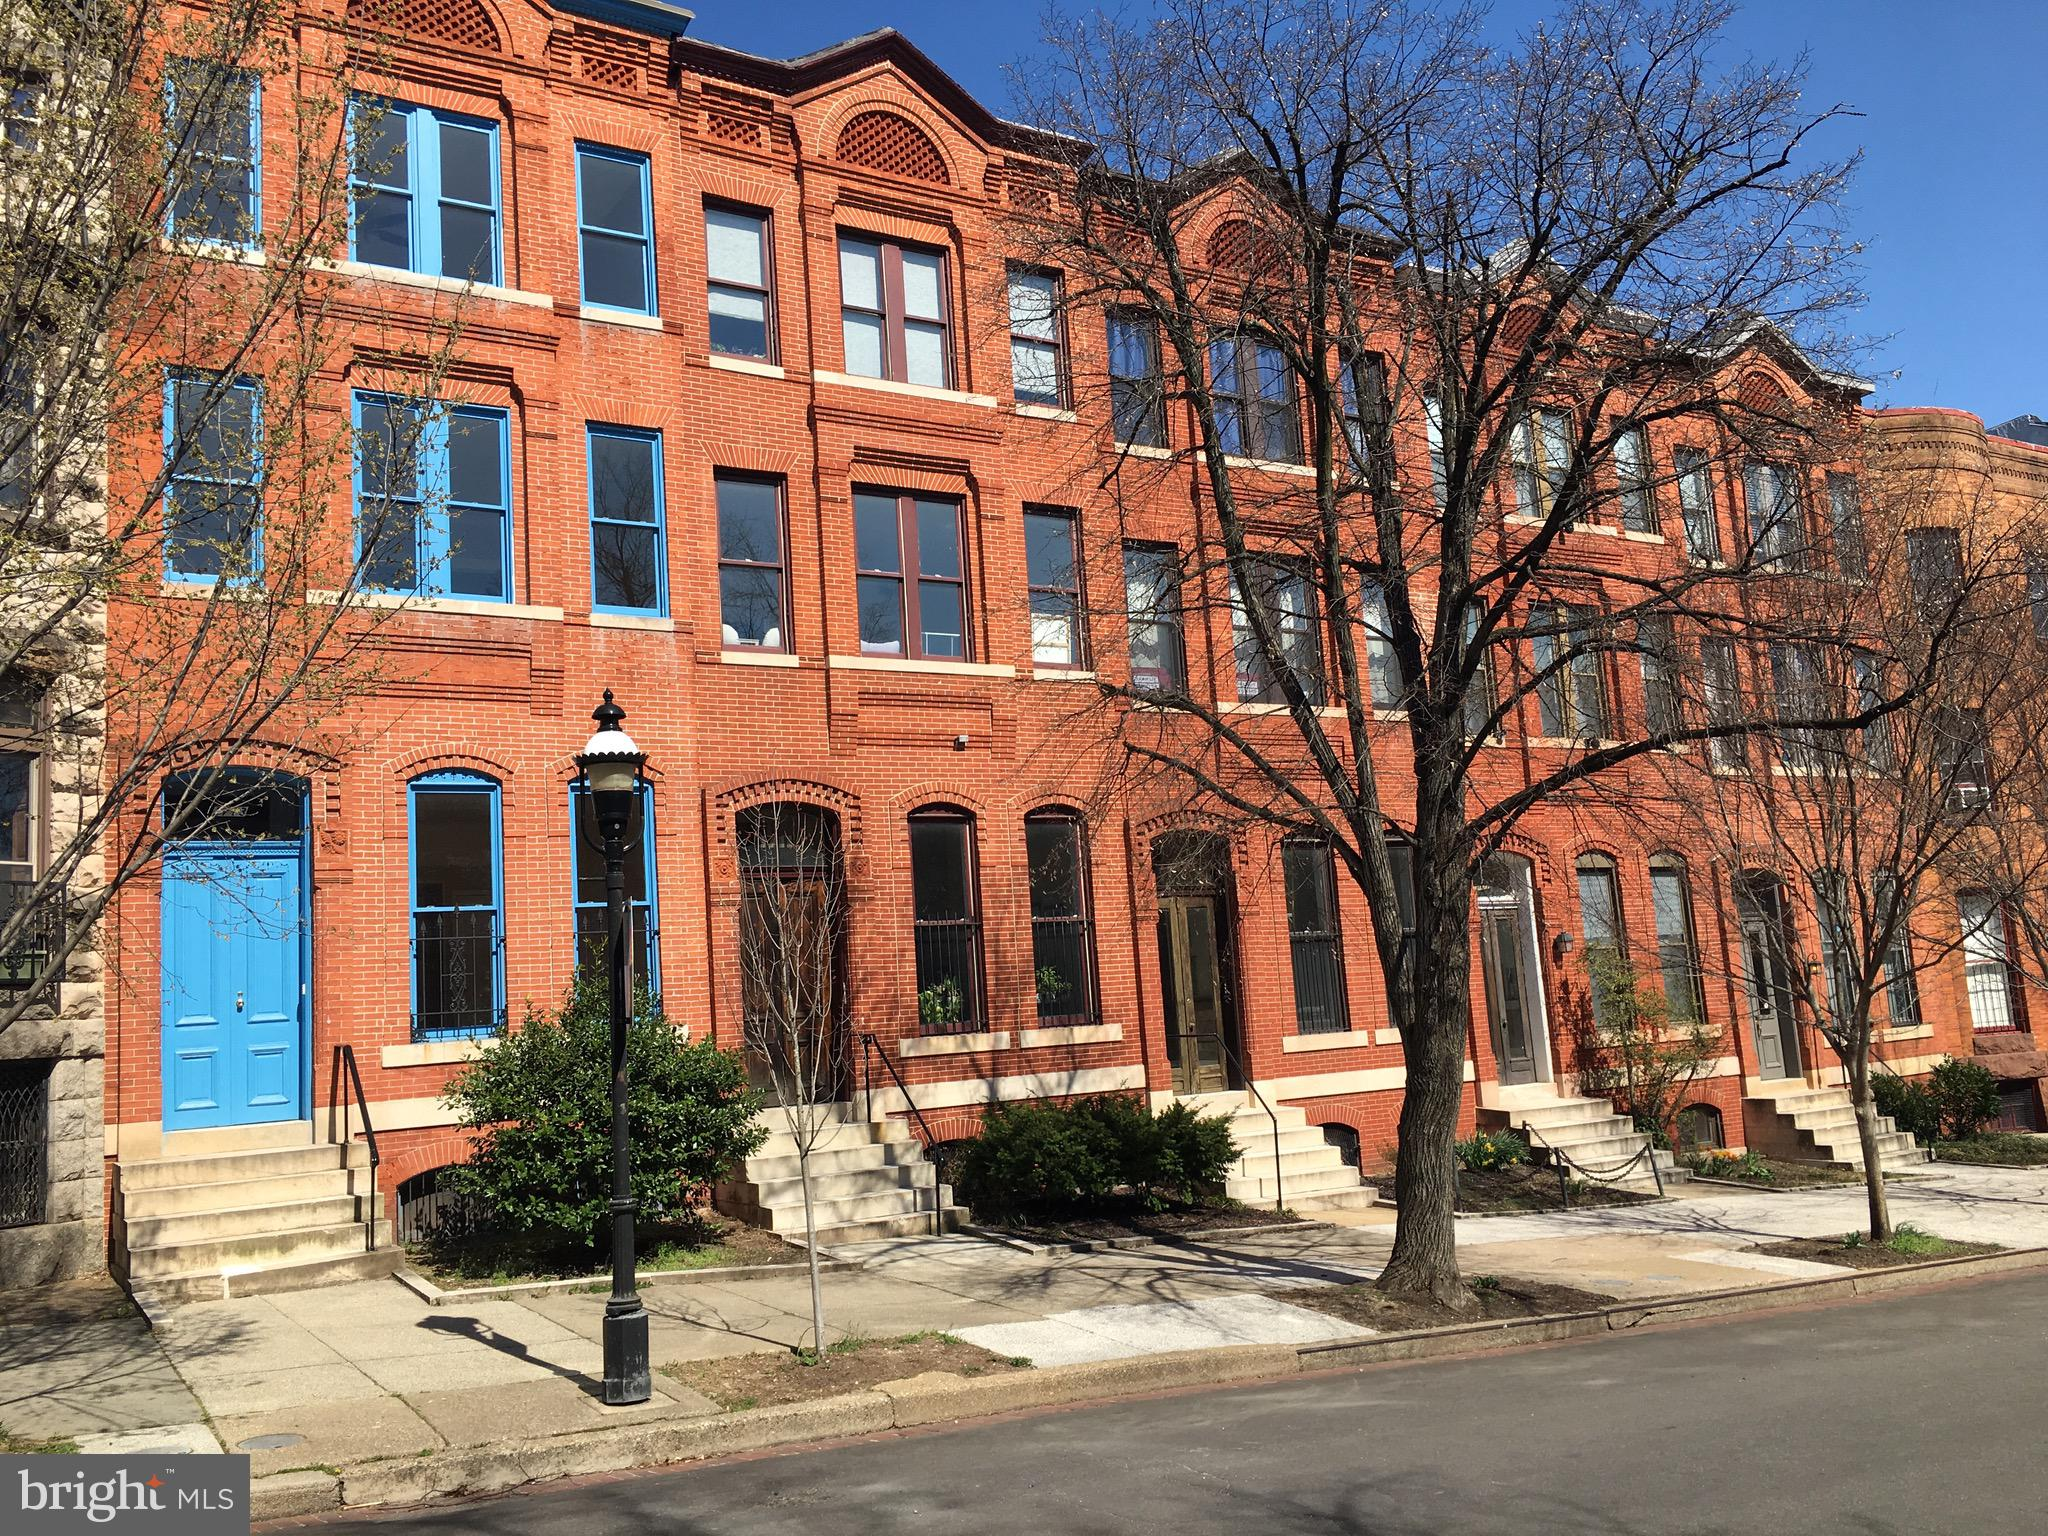 1713 BOLTON STREET, BALTIMORE, MD 21217